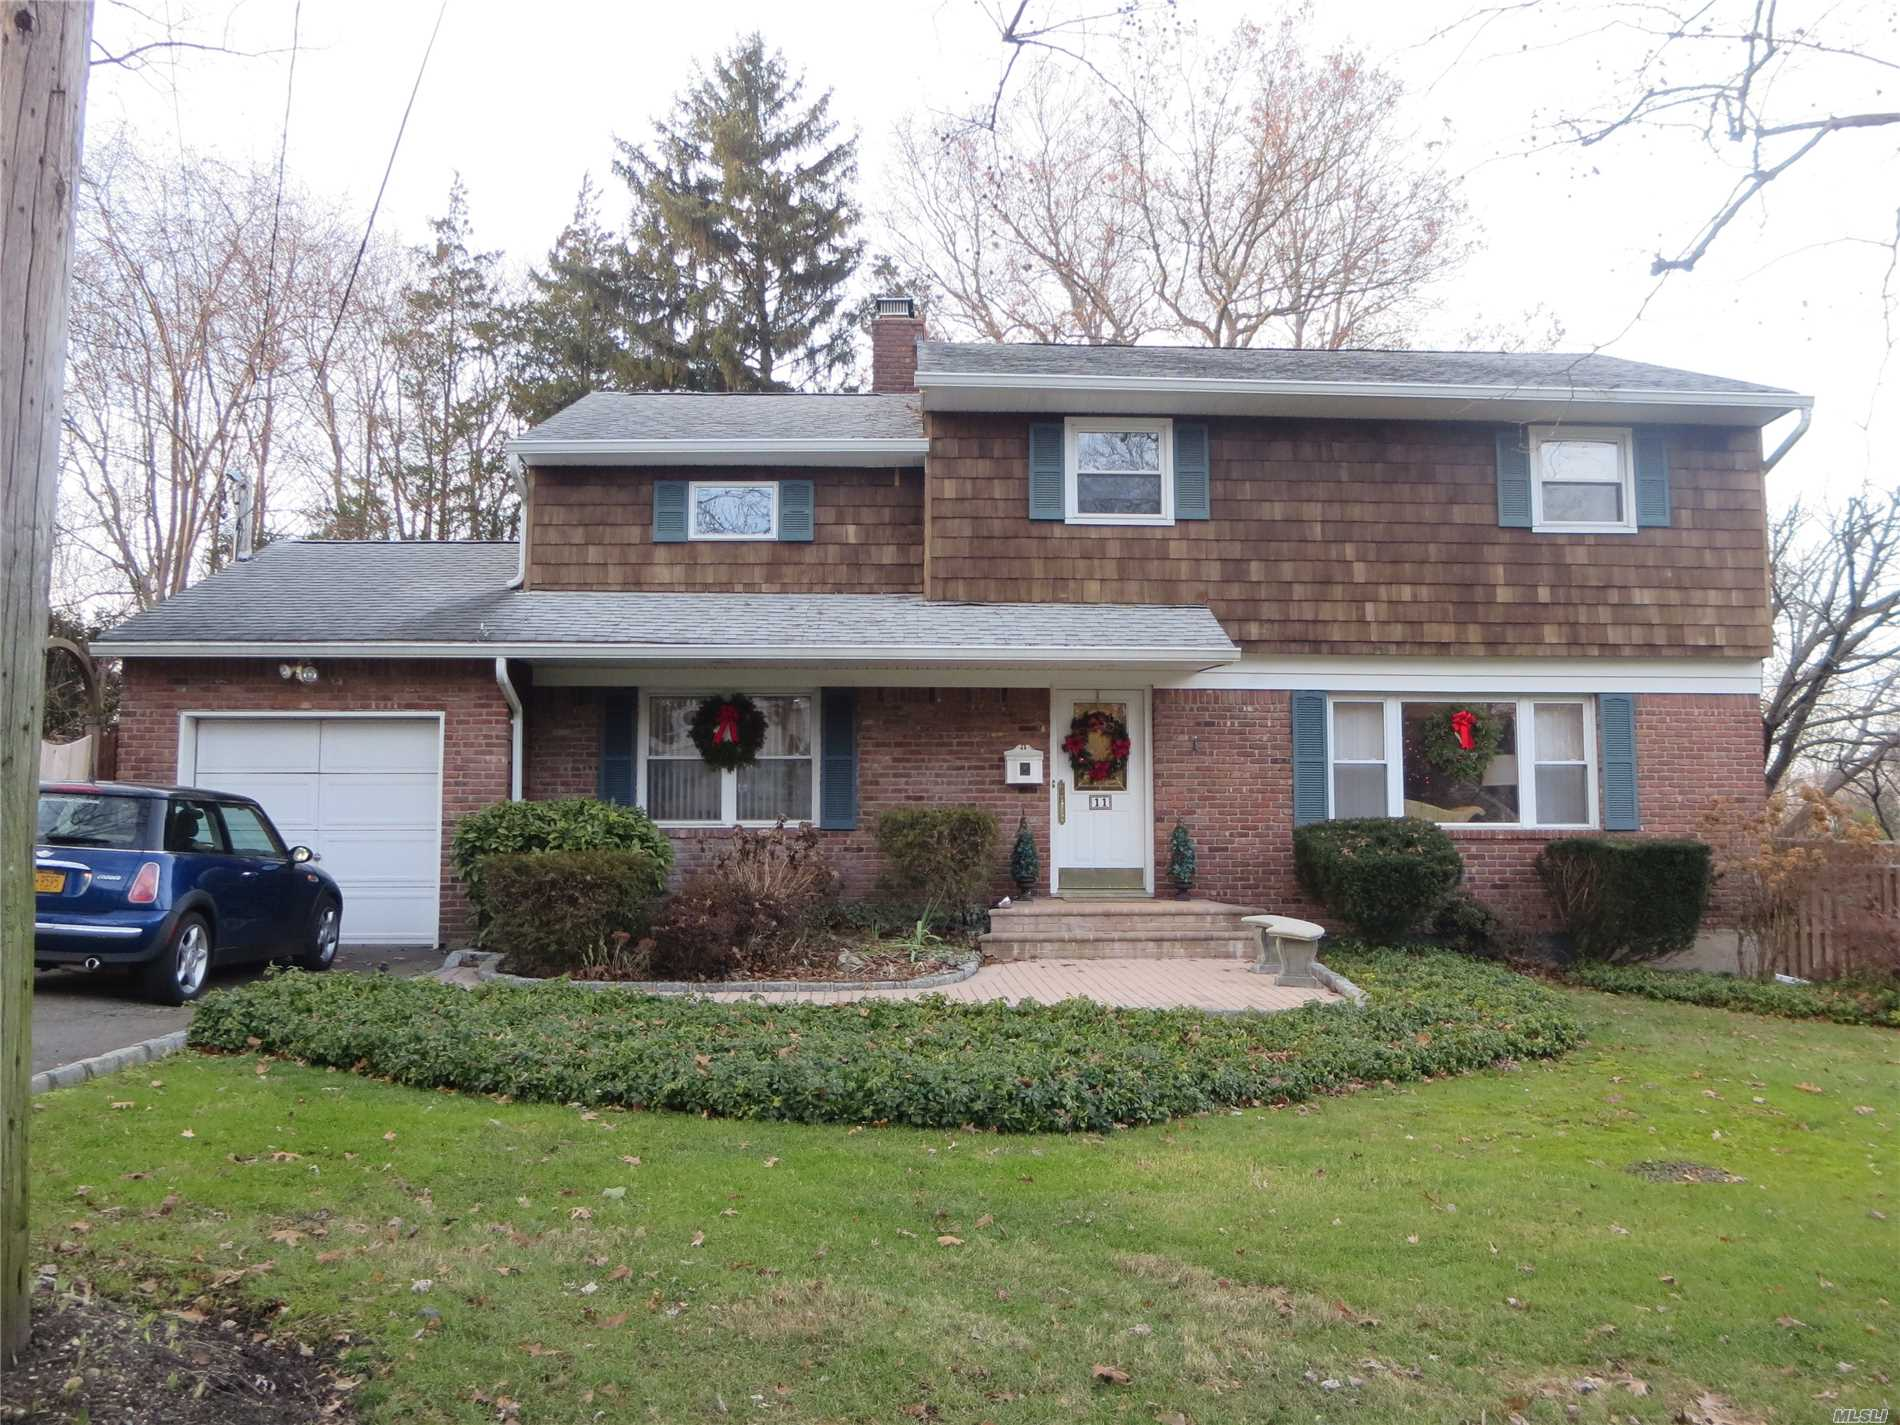 Beautiful 3/4 Br Colonial. All Tenants Must Submit Ntn Appl. Inc Verif Req. No Smoking & No Pets. Ground Care Incl. Huge Mbr Was Orig 2 B/R's. Can Have 1/2 As An Office Or Nursery. Eik W/Center Island. D/R W/Sliders To Huge Deck. Fully Fenced Yd. 2 Zone Cac. Minutes To Hunt Village & Lirr. Tons Of Closets. Recessed Lighting Throughout. Neutral Colors. Spa Like Master Bath With Sumptuous Whirlpool Tub & Sep Shower. Gas Fpl In Den. Fin Bsmt W/Ceramic Tile Fl. Gas Heat/Cooking. Occupancy March 1st.